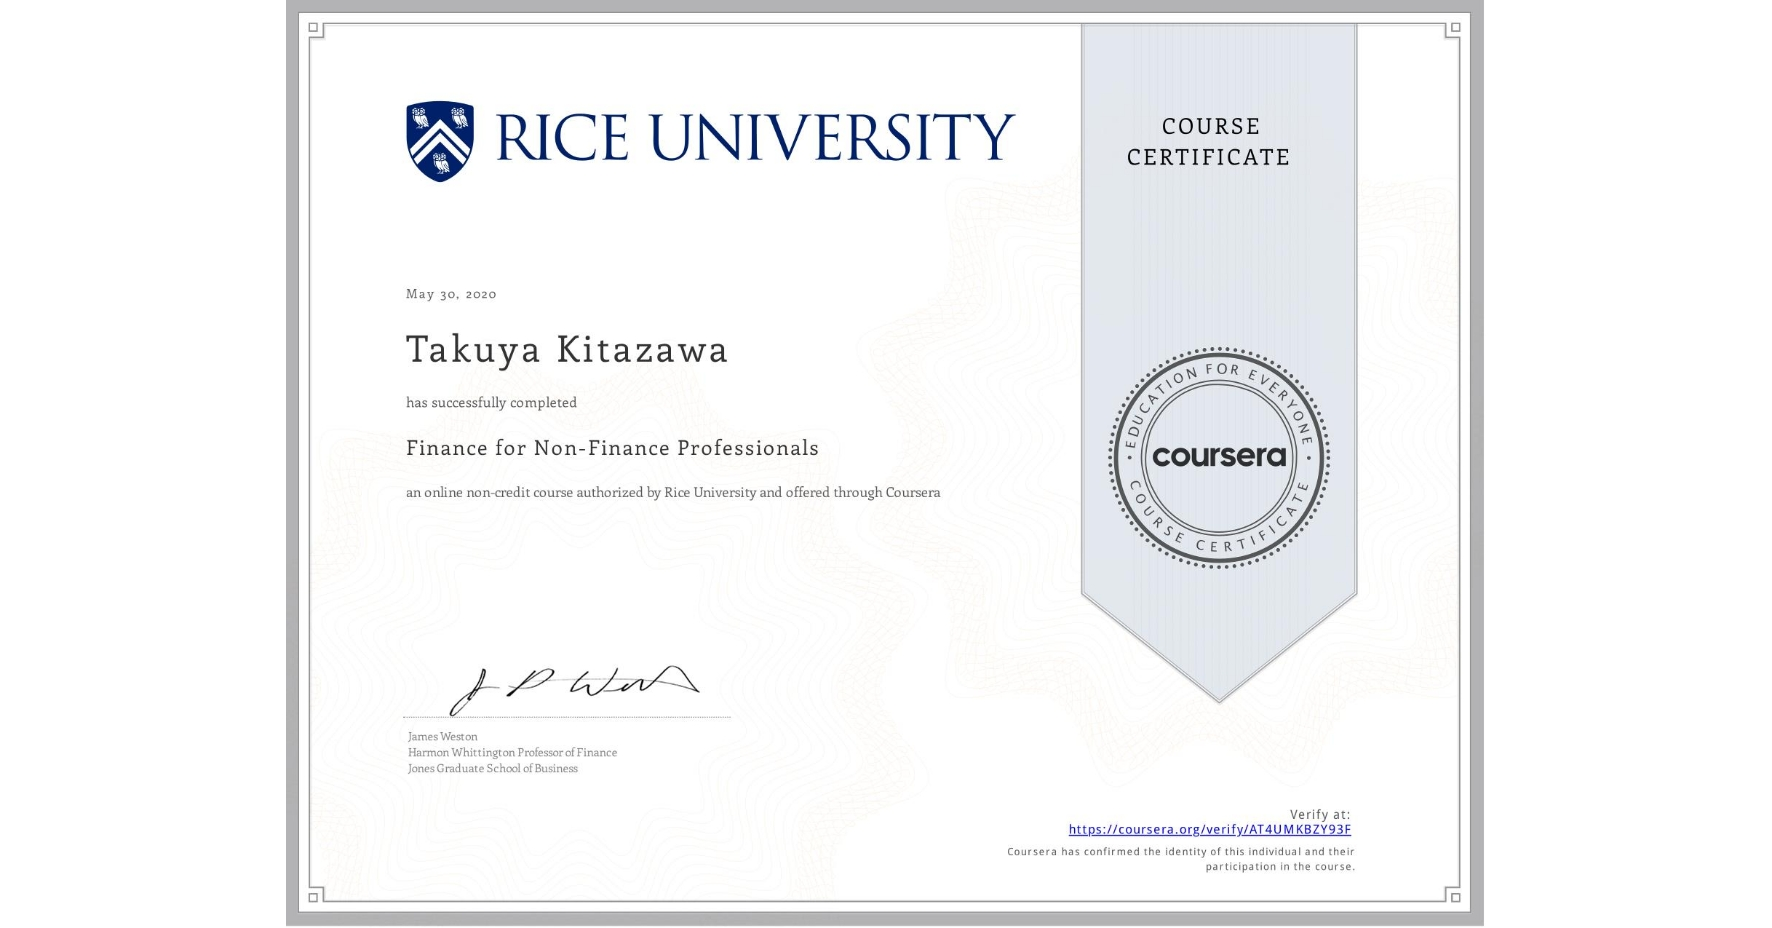 View certificate for Takuya Kitazawa, Finance for Non-Finance Professionals, an online non-credit course authorized by Rice University and offered through Coursera